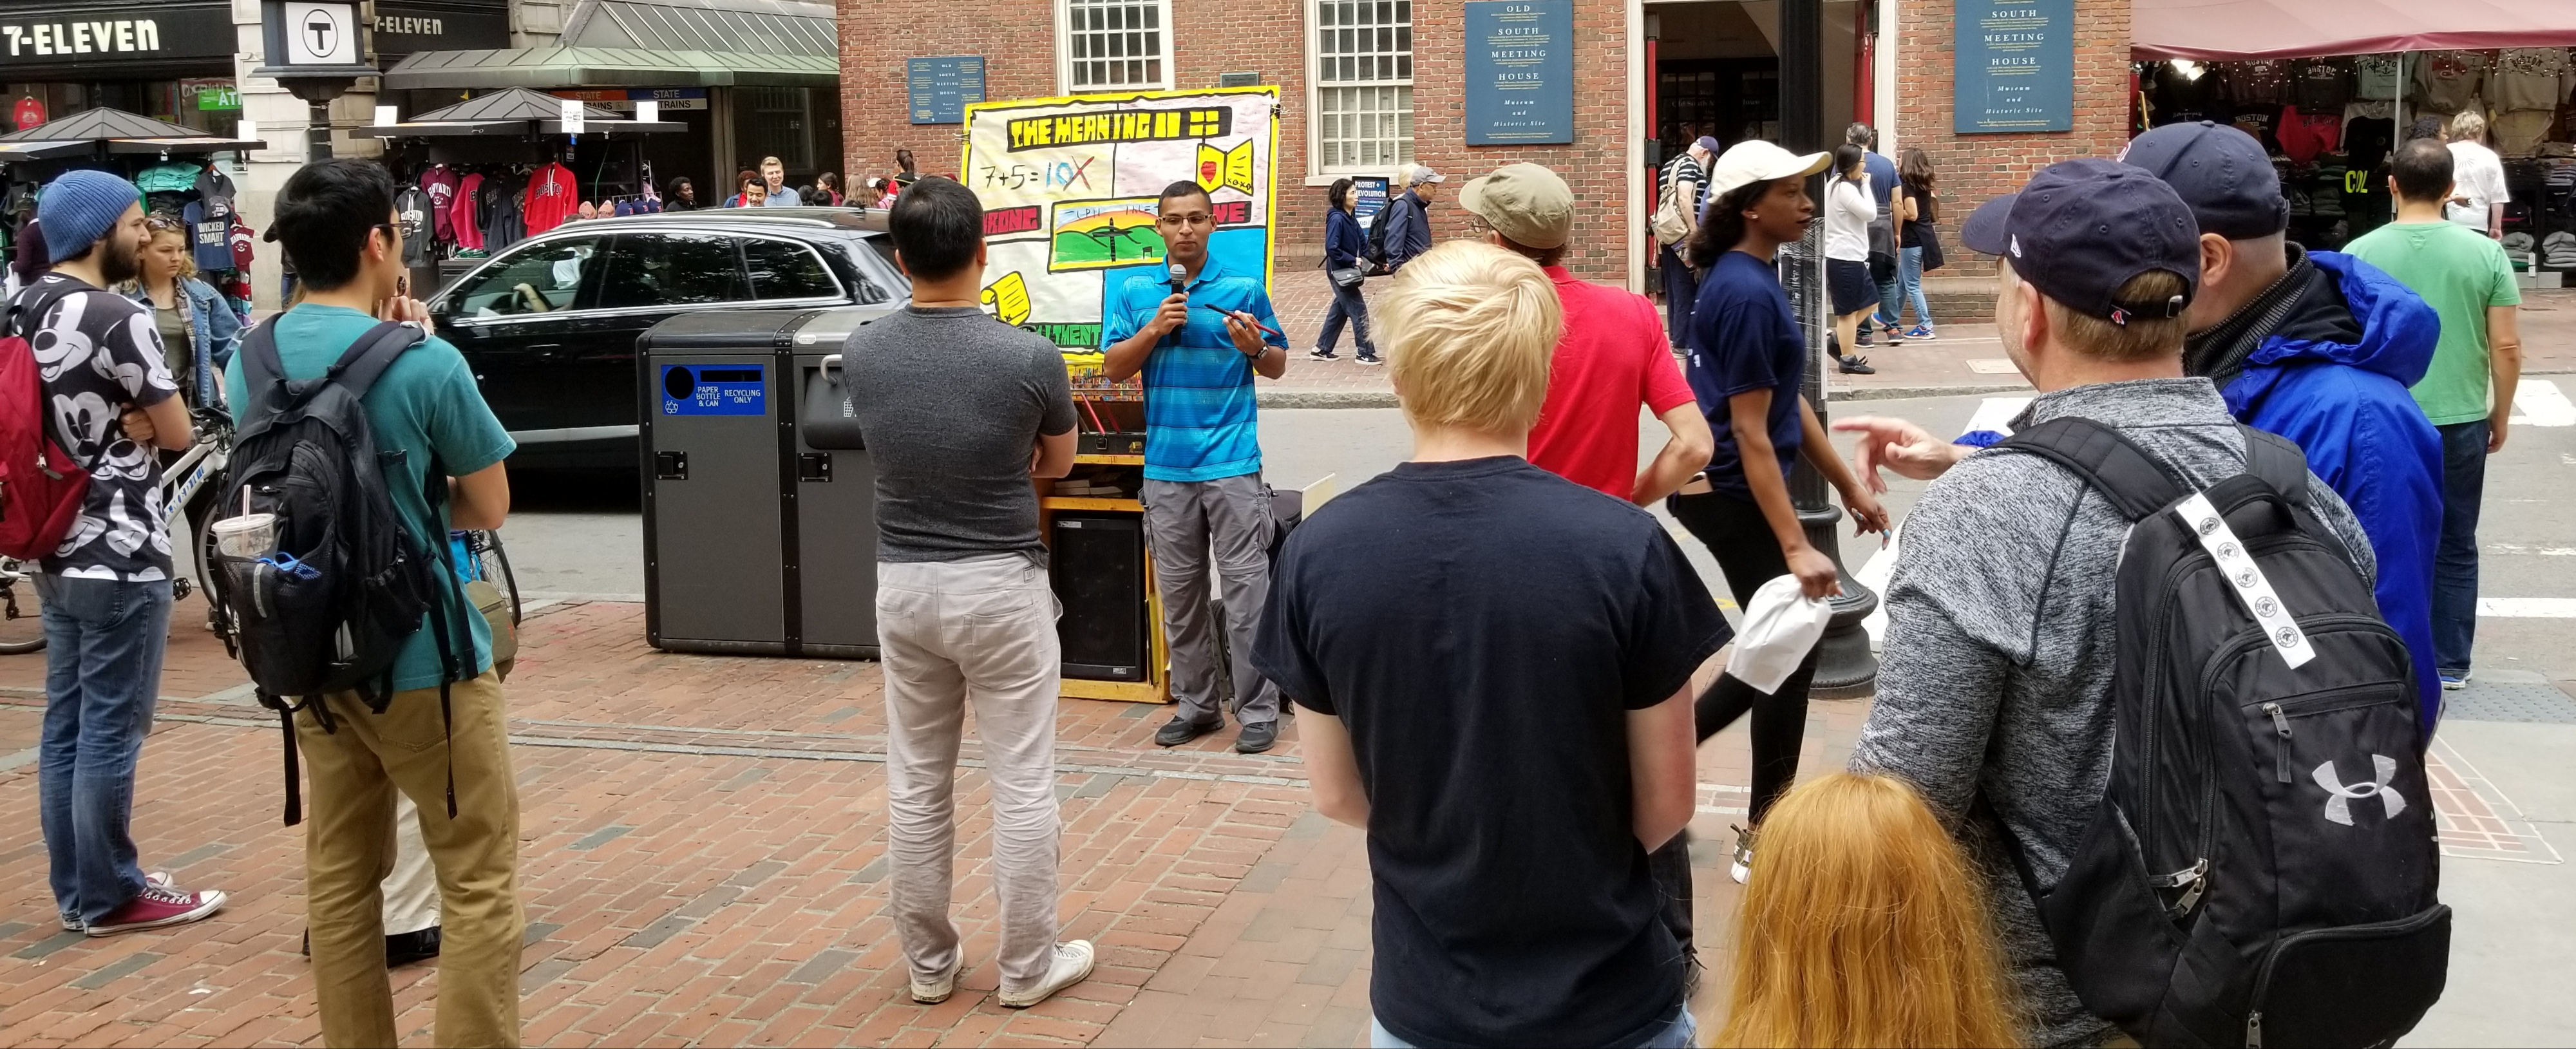 This is Daniel. He came from Costa Rica to take Open Air Campaigners training with us in Boston! This was his first time giving a message to adults. Many listened and many one-on-one discussions happened. Praise God!